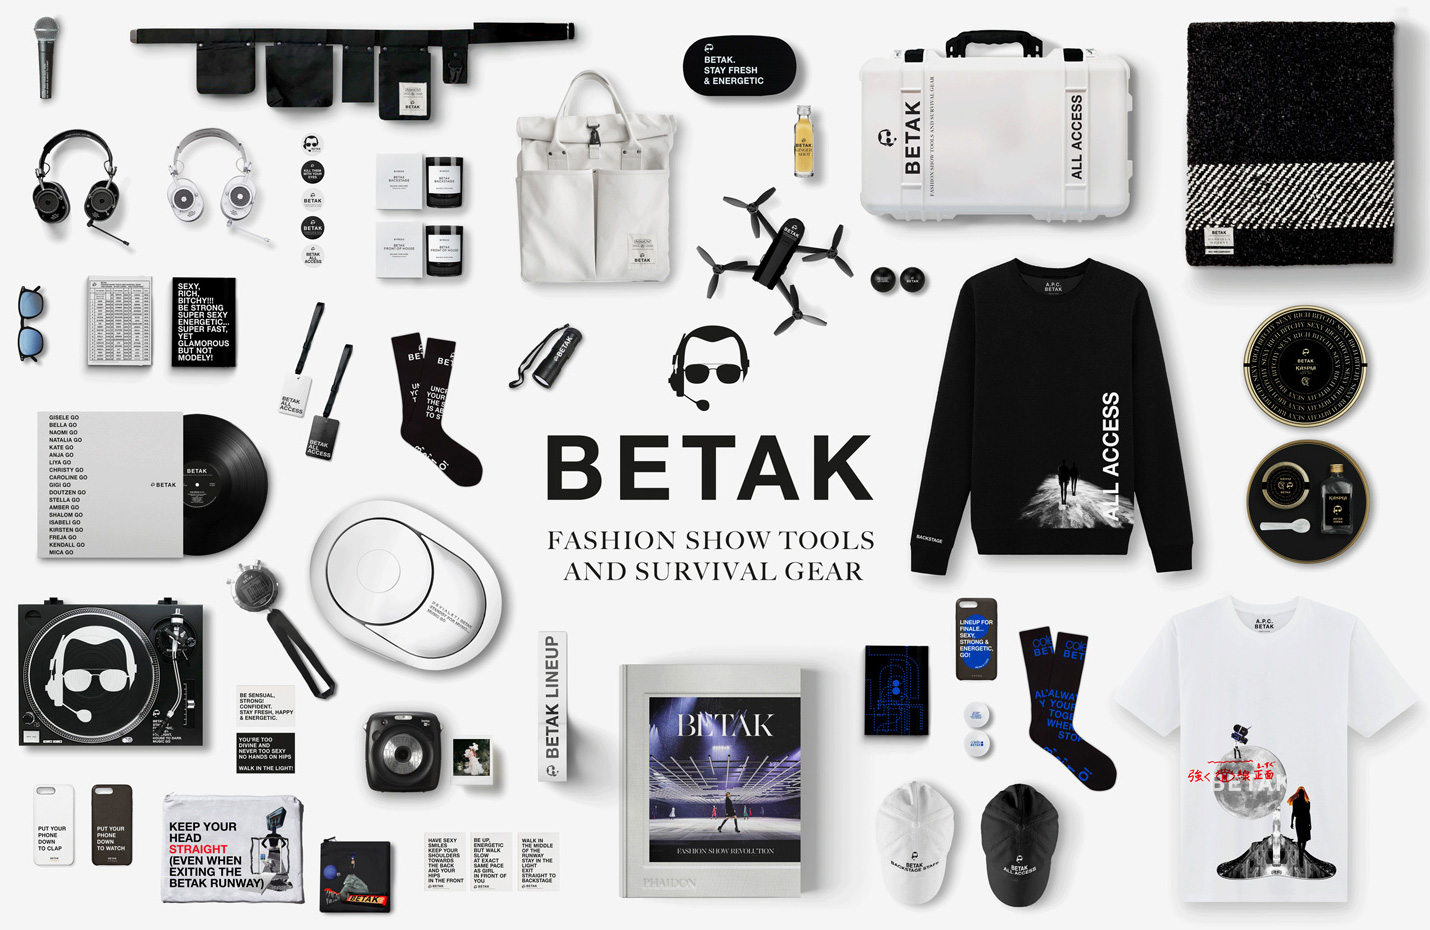 Colette's new Betak collection. Image courtesy of Colette